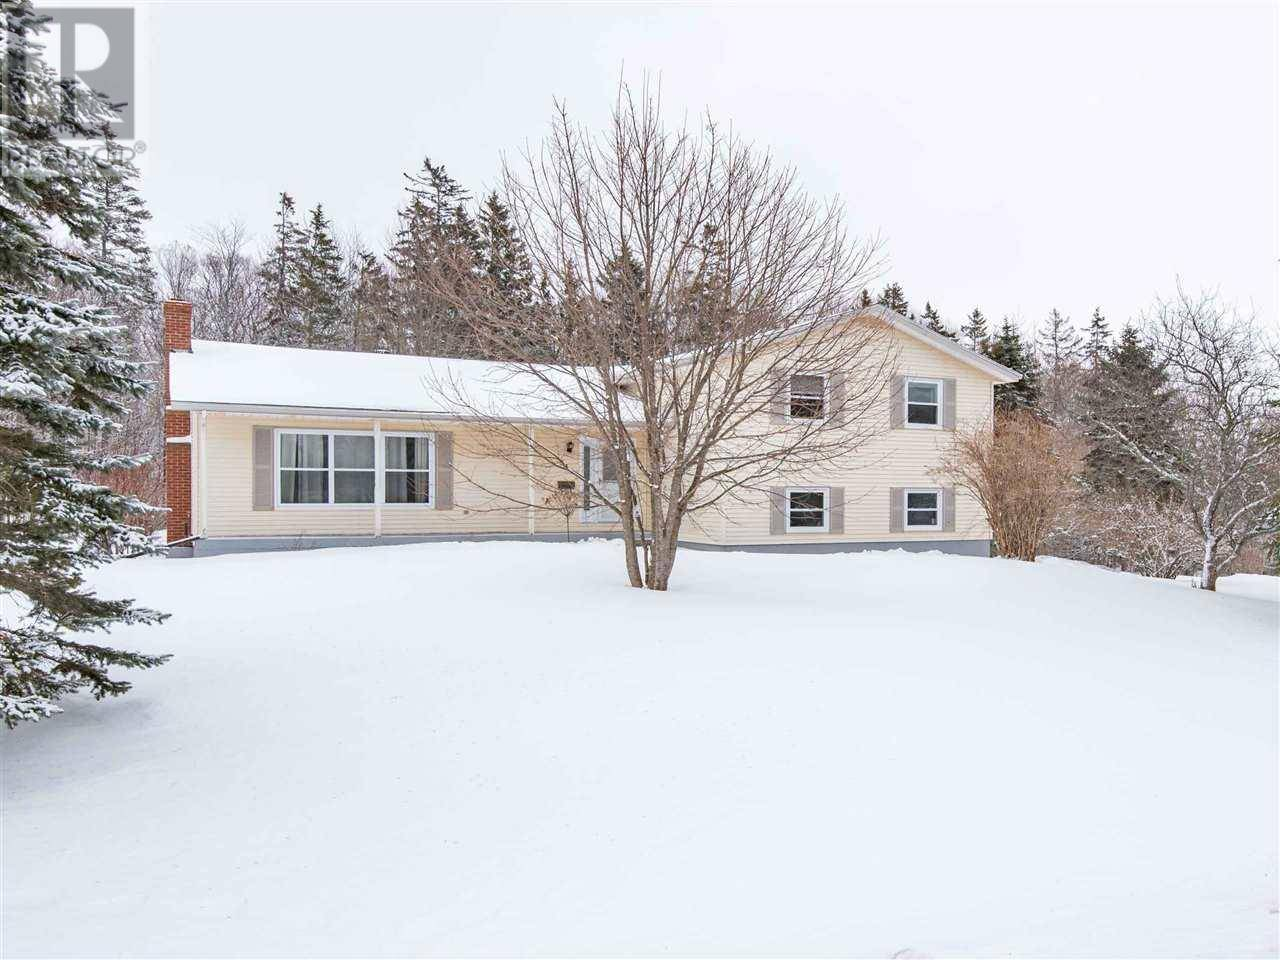 House for sale at 53 Earl Dr Stratford Prince Edward Island - MLS: 202001526